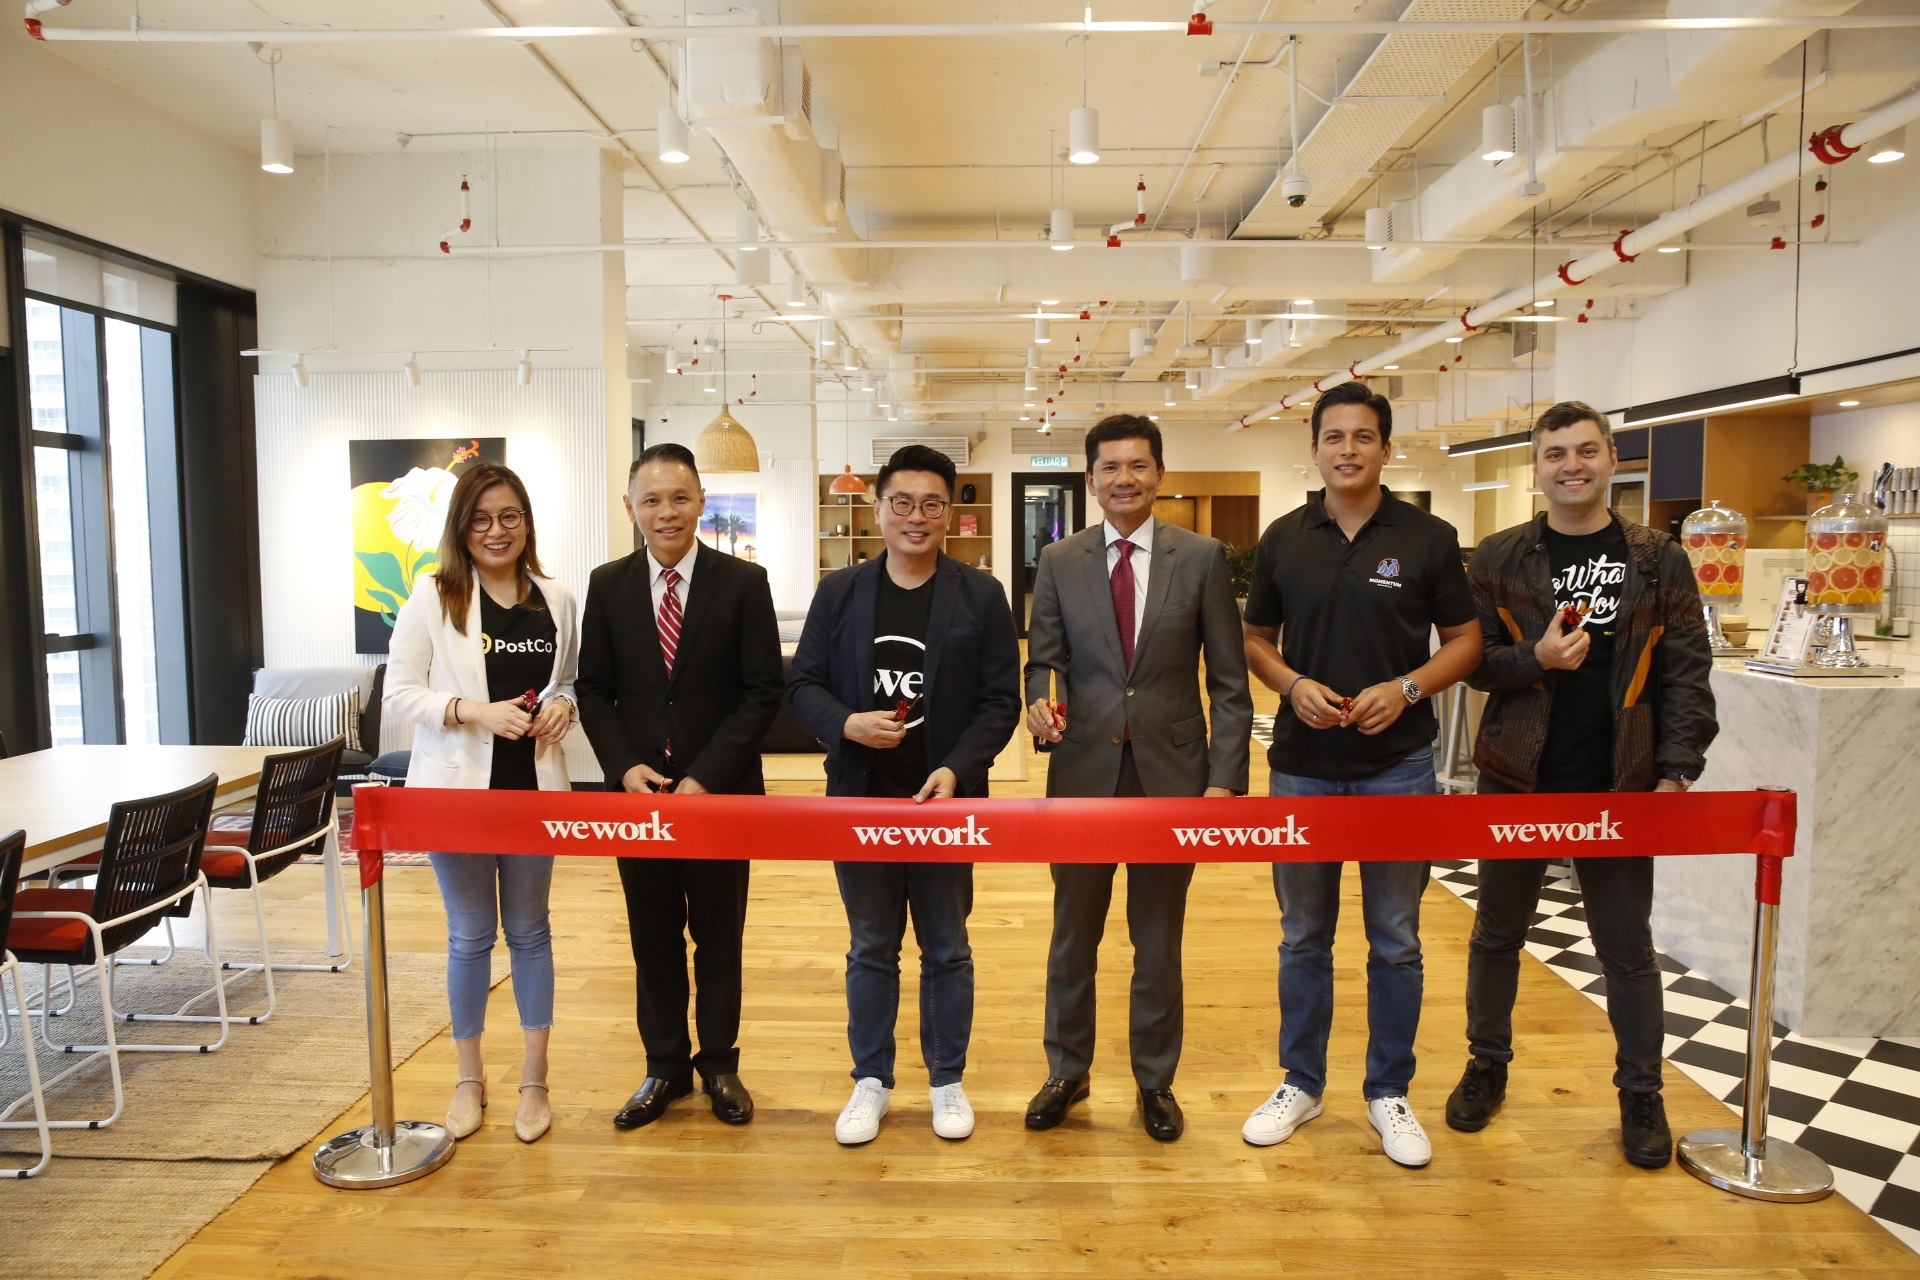 """(From left) InvestKL Investor Relations - Americas & Europe director & head Dennis Tan; PostCo co-founder & COO Melisa Wang; WeWork Southeast Asia MD Turochas """"T"""" Fuad; InvestKL CEO Zainal Amanshah; Momentum Commerce founder & CEO Hans-Peter Ressel; and WeWork Southeast Asia head of Community and Member Experience Eyad Zahra"""